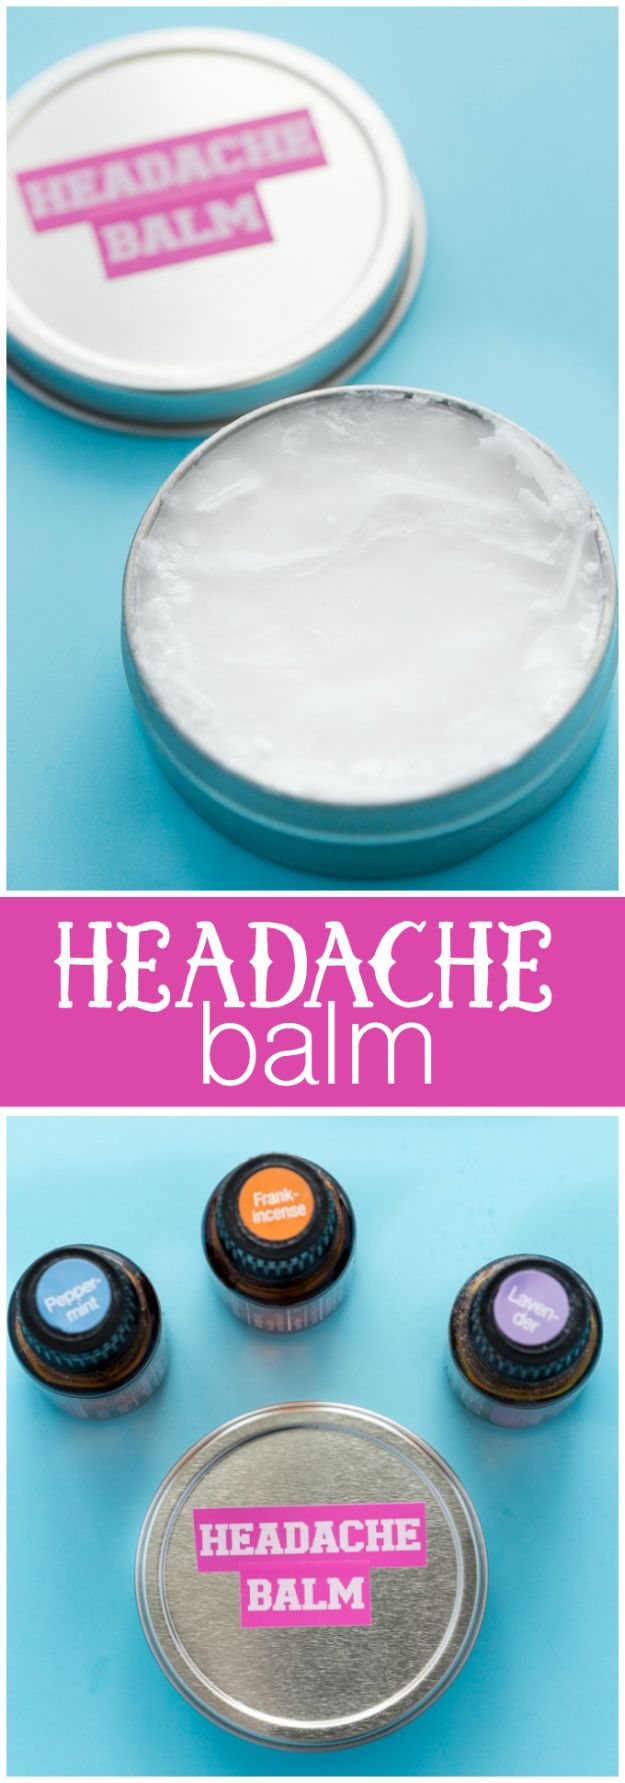 DIY Essential Oil Recipes and Ideas - Headache Balm - Cool Recipes, Crafts and Home Decor to Make With Essential Oil - Diffuser Projects, Roll On Prodicts for Skin - Recipe Tutorials for Cleaning, Colds, For Sleep, For Hair, For Paint, For Weight Loss #crafts #diy #essentialoils